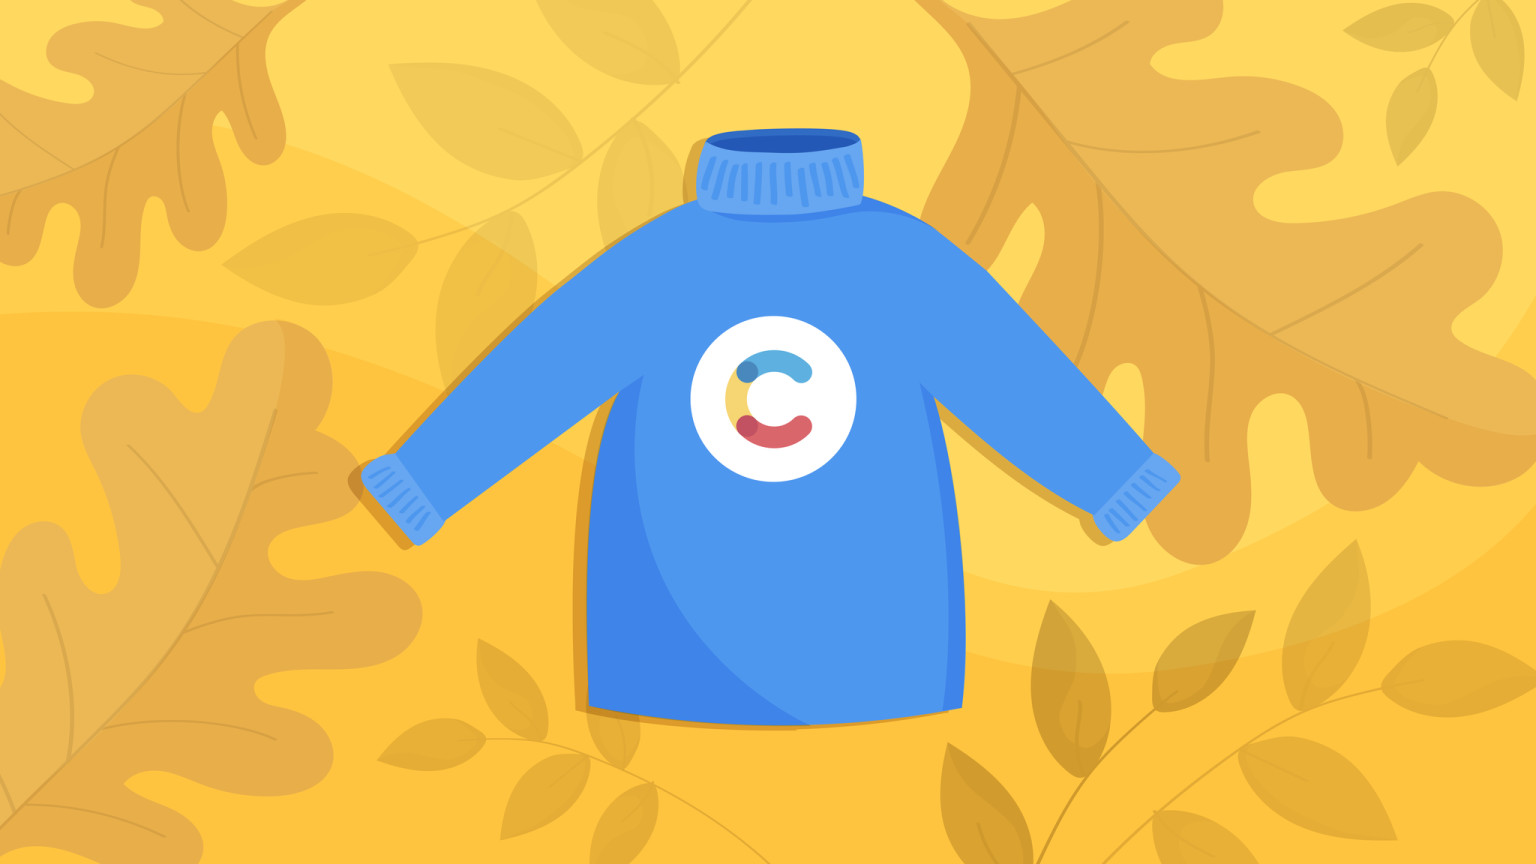 The Autumn of livestreams with Contentful - image depicting a cozy sweater with the Contentful logo.